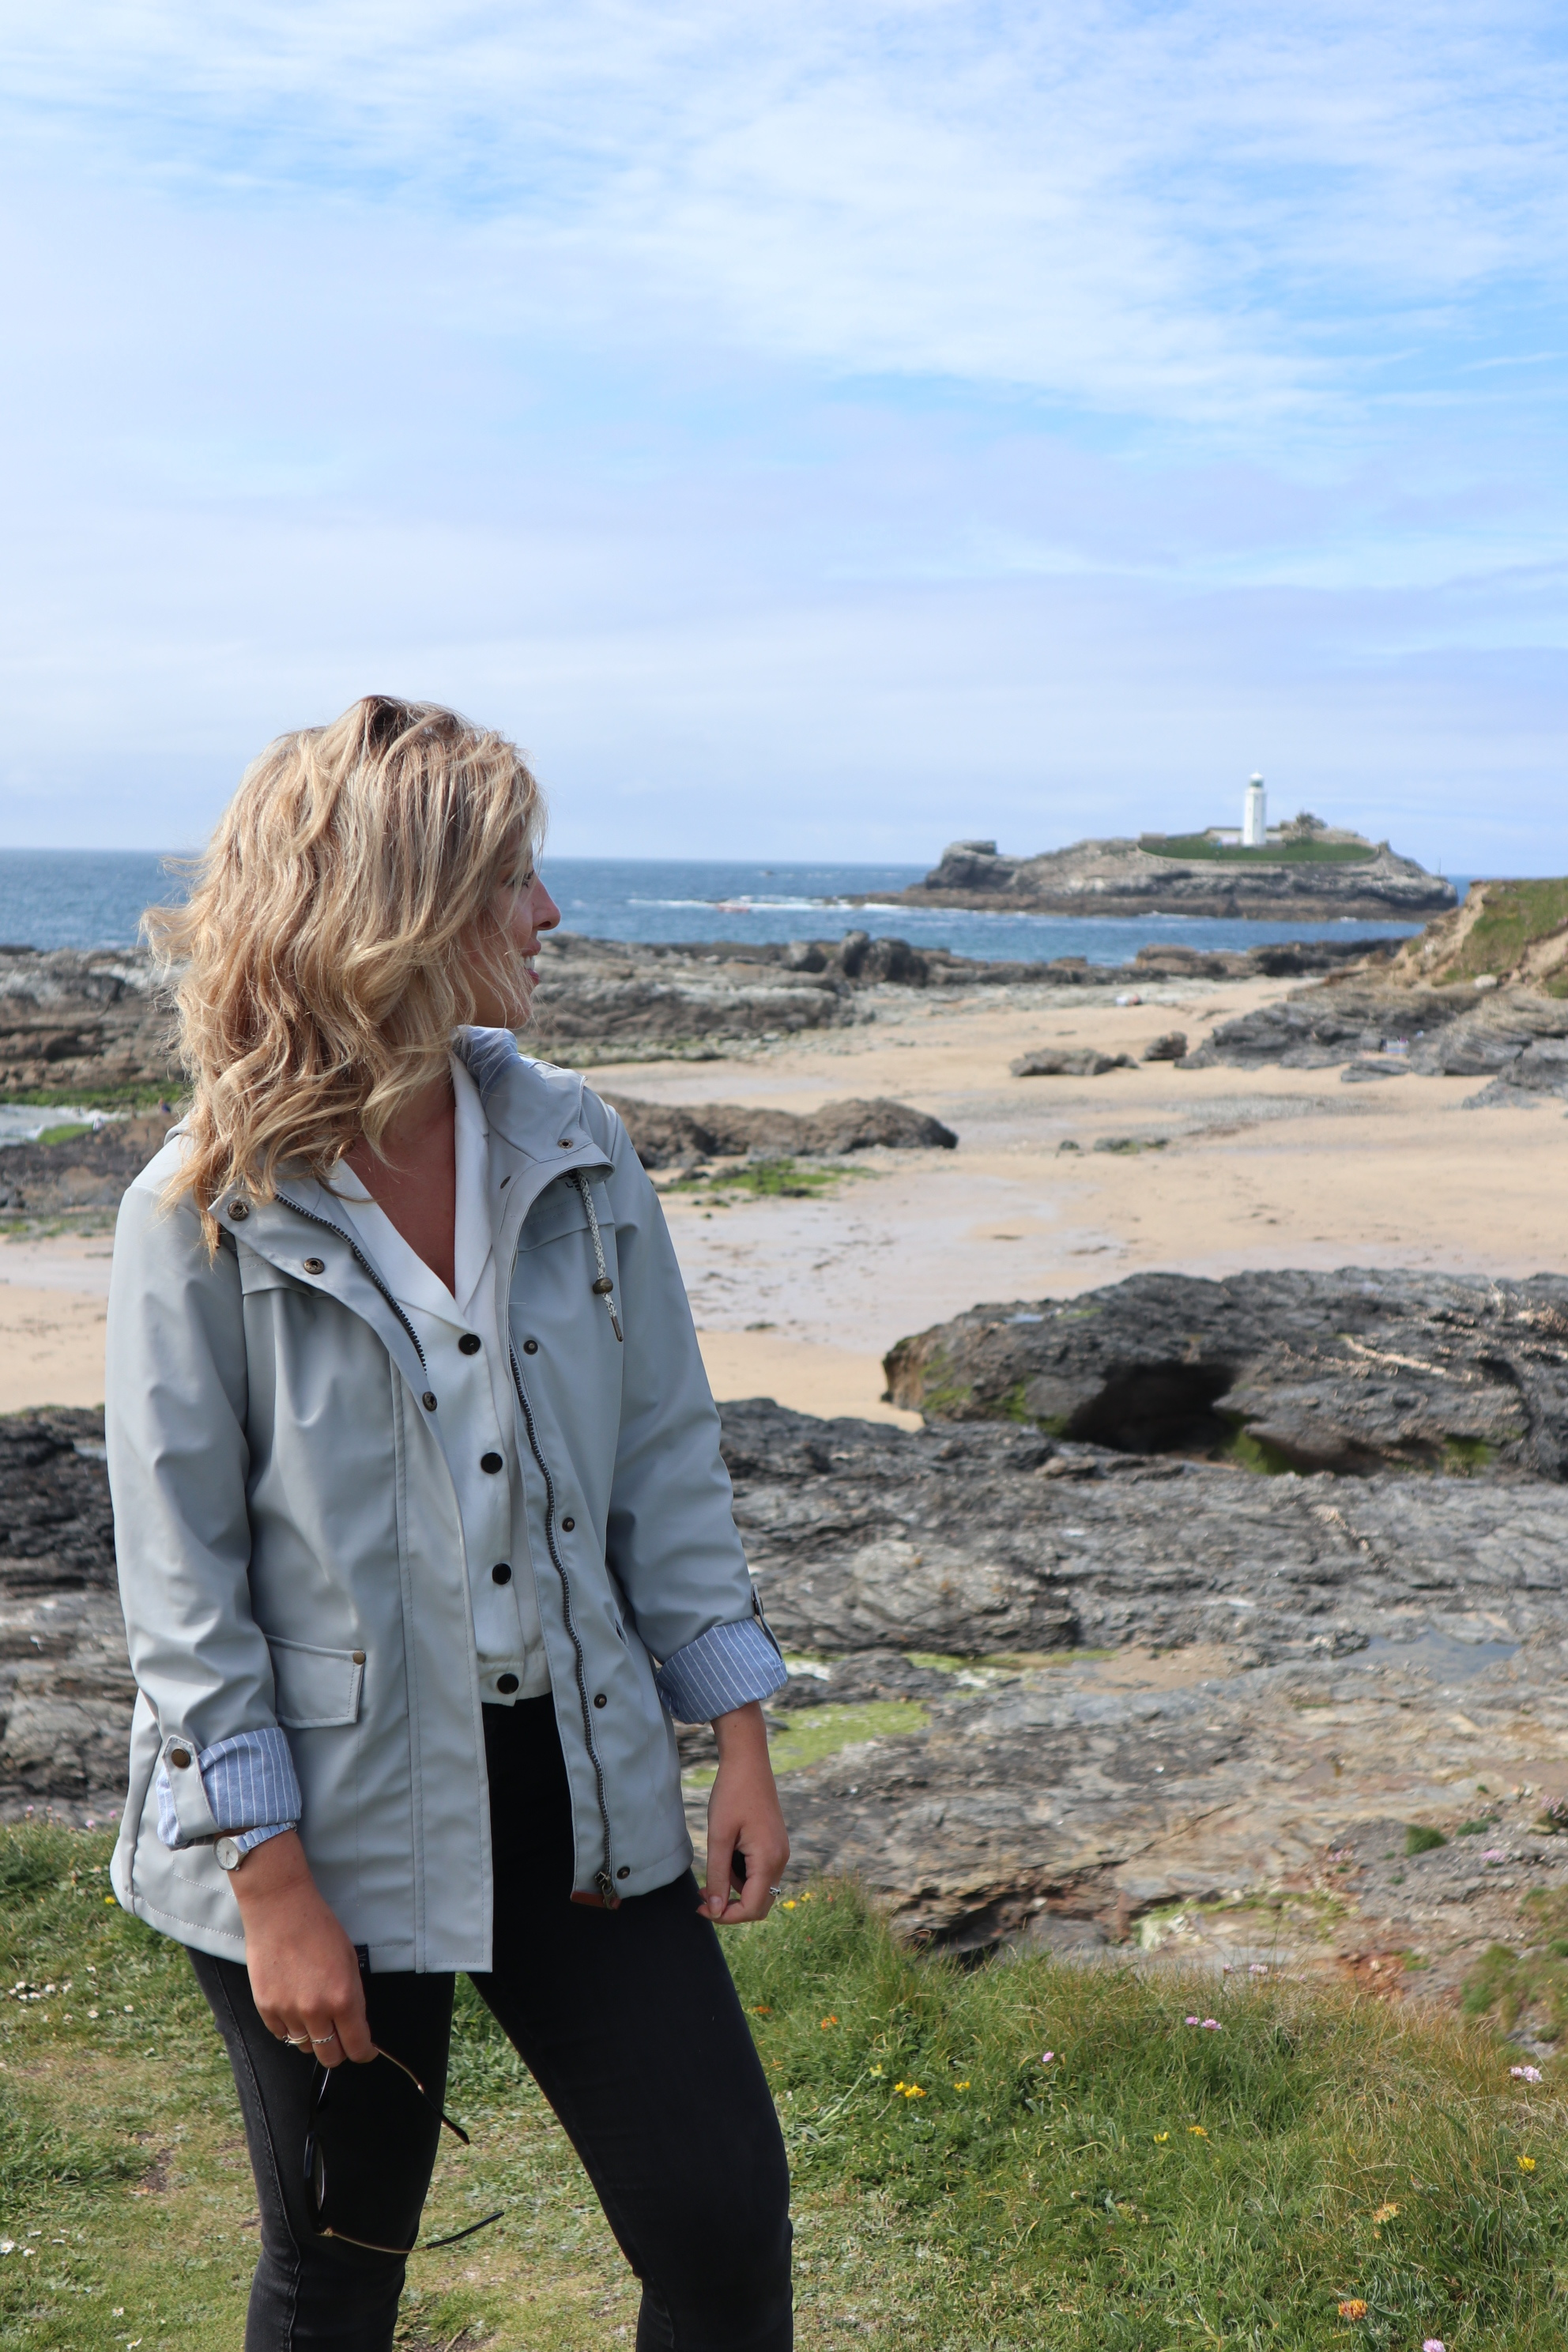 Cornwall Blog - Meet Me by the Sea